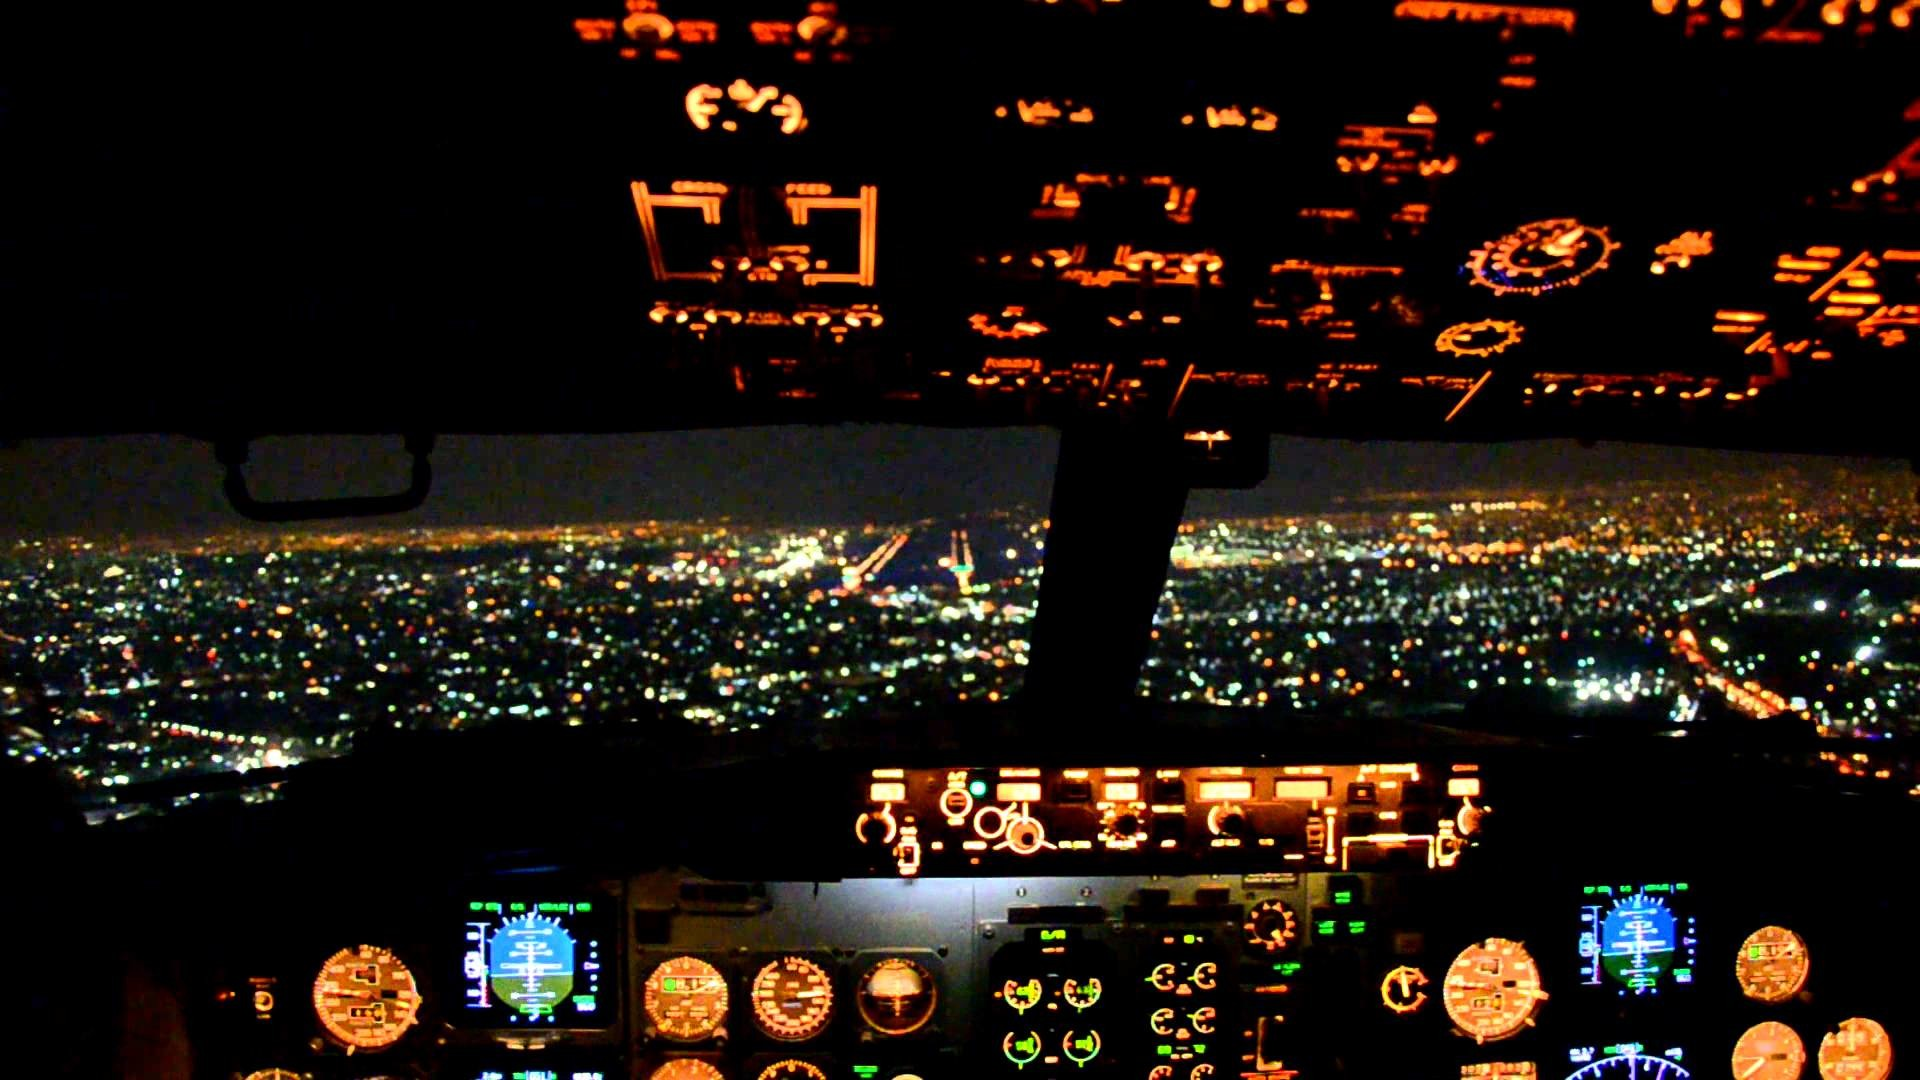 Popular Wallpaper Night Airplane - 815783-airplane-cockpit-wallpaper-1920x1080-for-htc  You Should Have.jpg